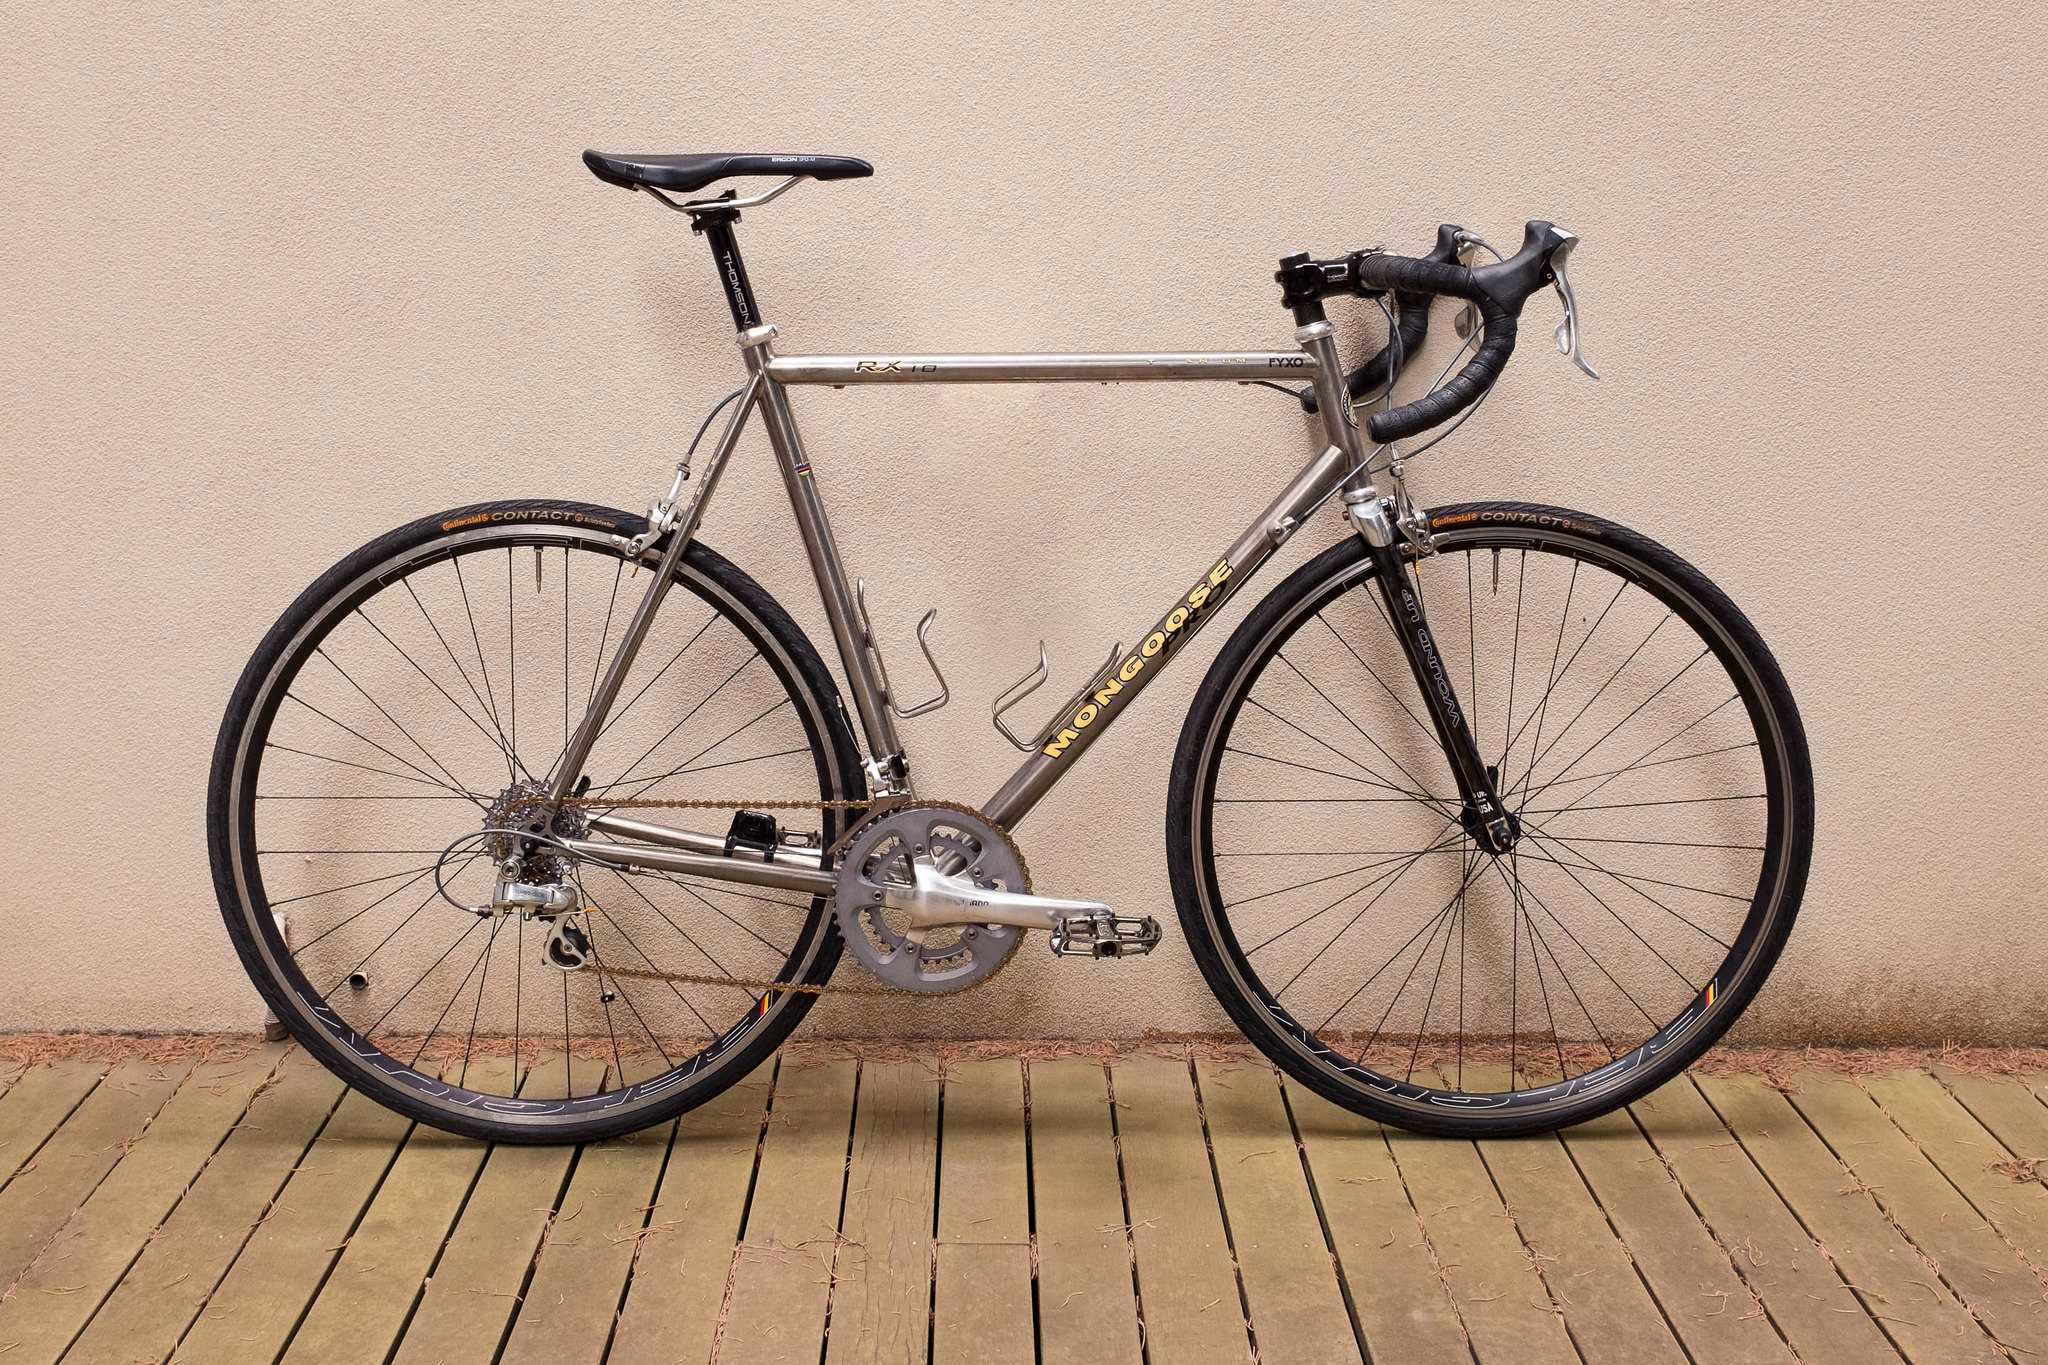 Drive-side view of vintage titanium Mongoose road bike leaning against a wall